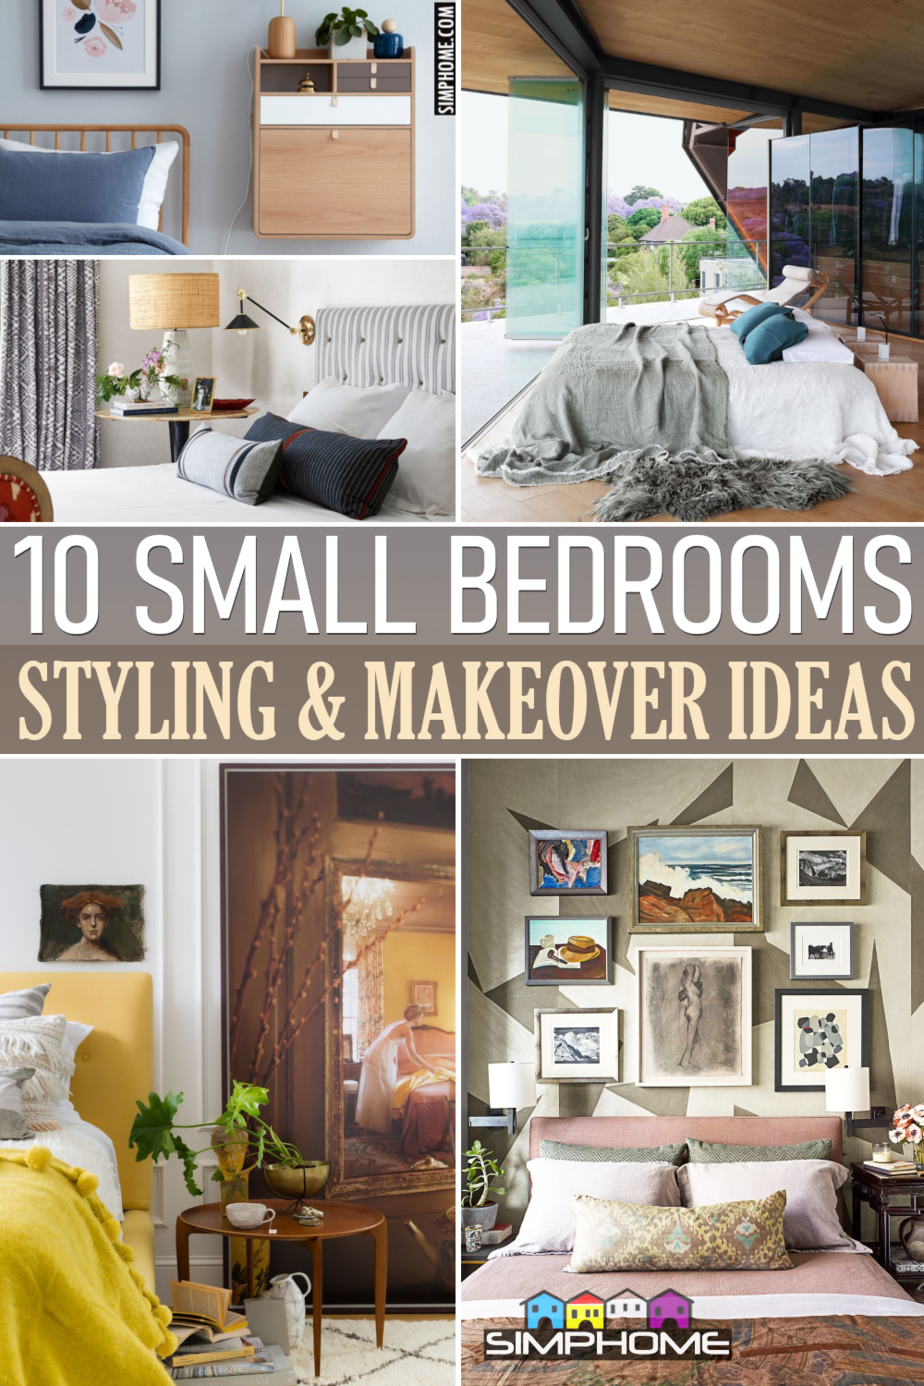 10 Small Bedroom Styling Ideas via Simphome.comThumbnail